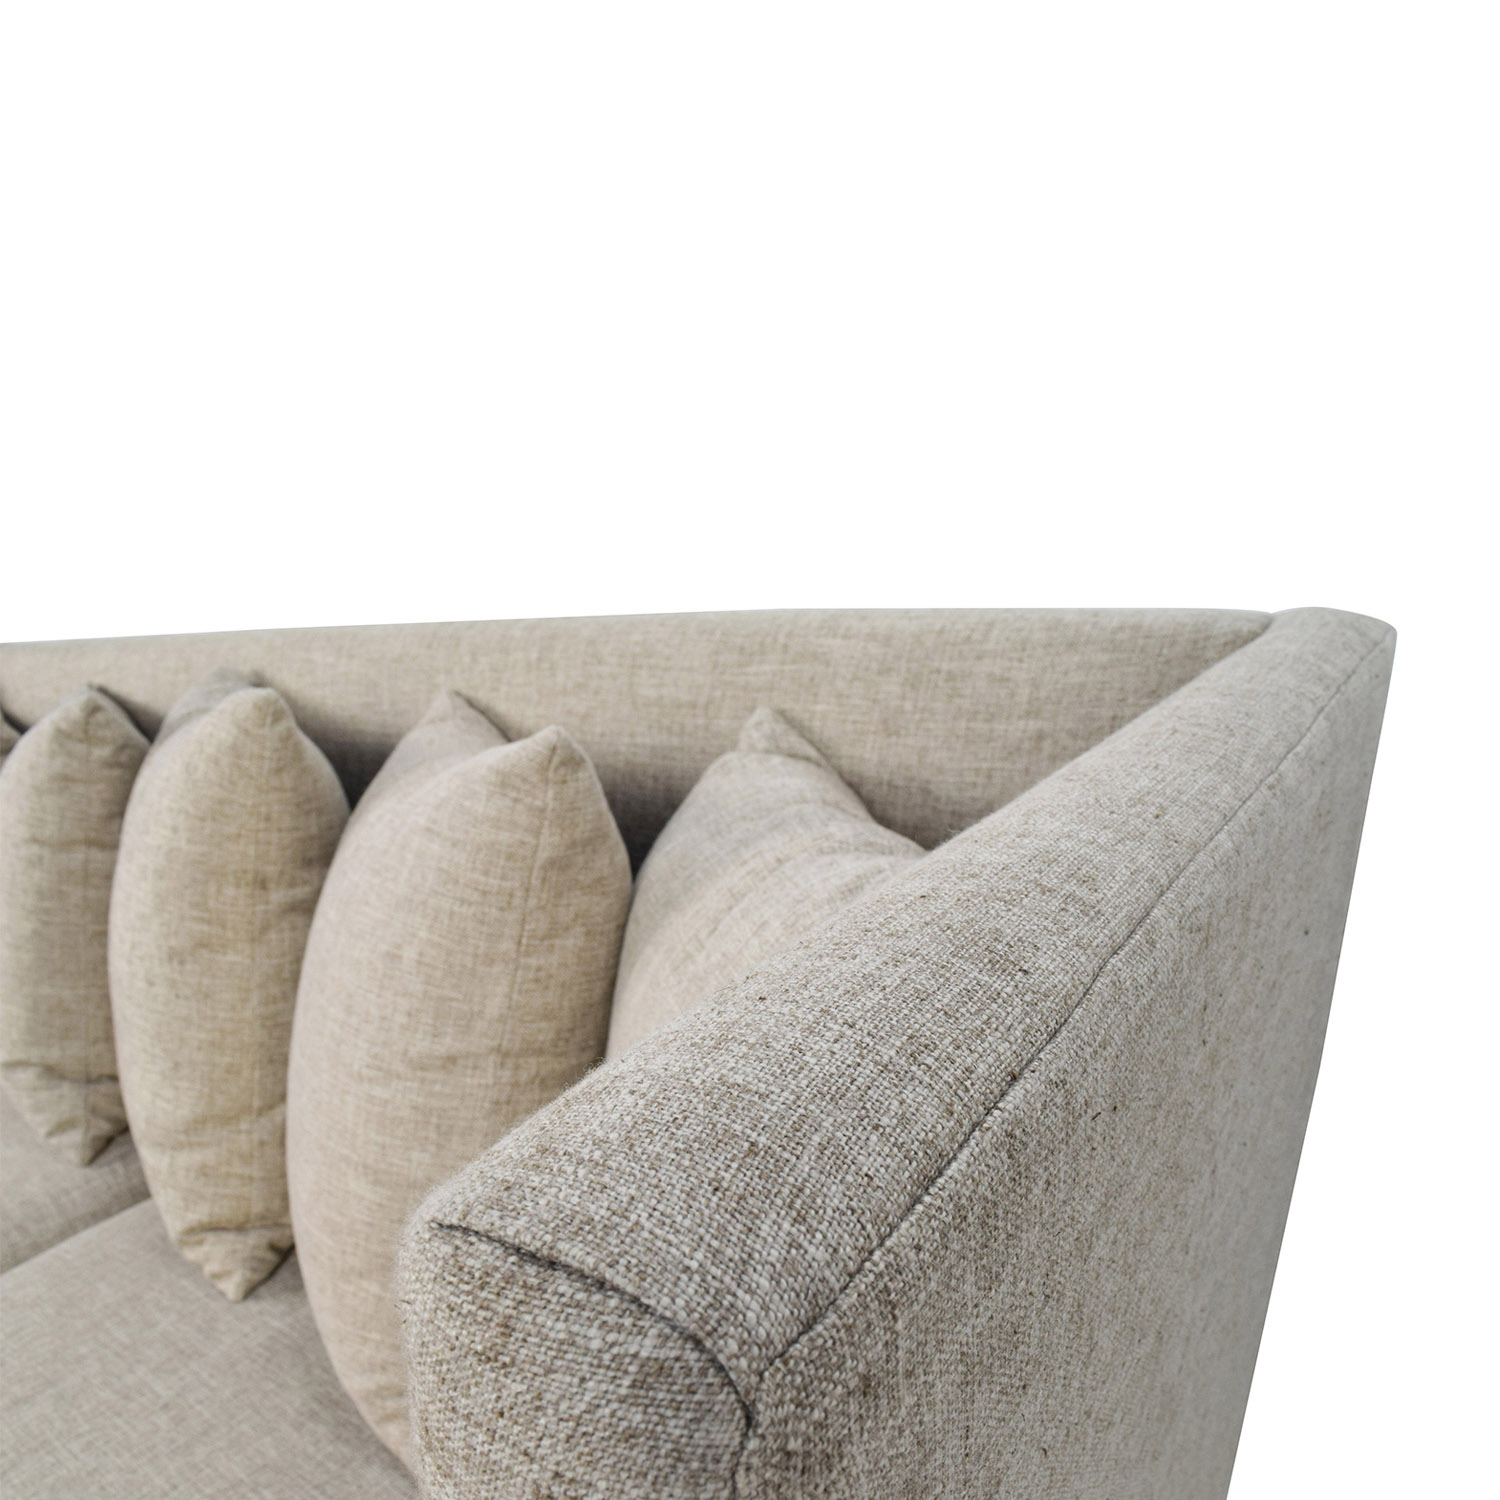 34% OFF - Crate and Barrel Crate & Barrel Shelter Beige Couch / Sofas